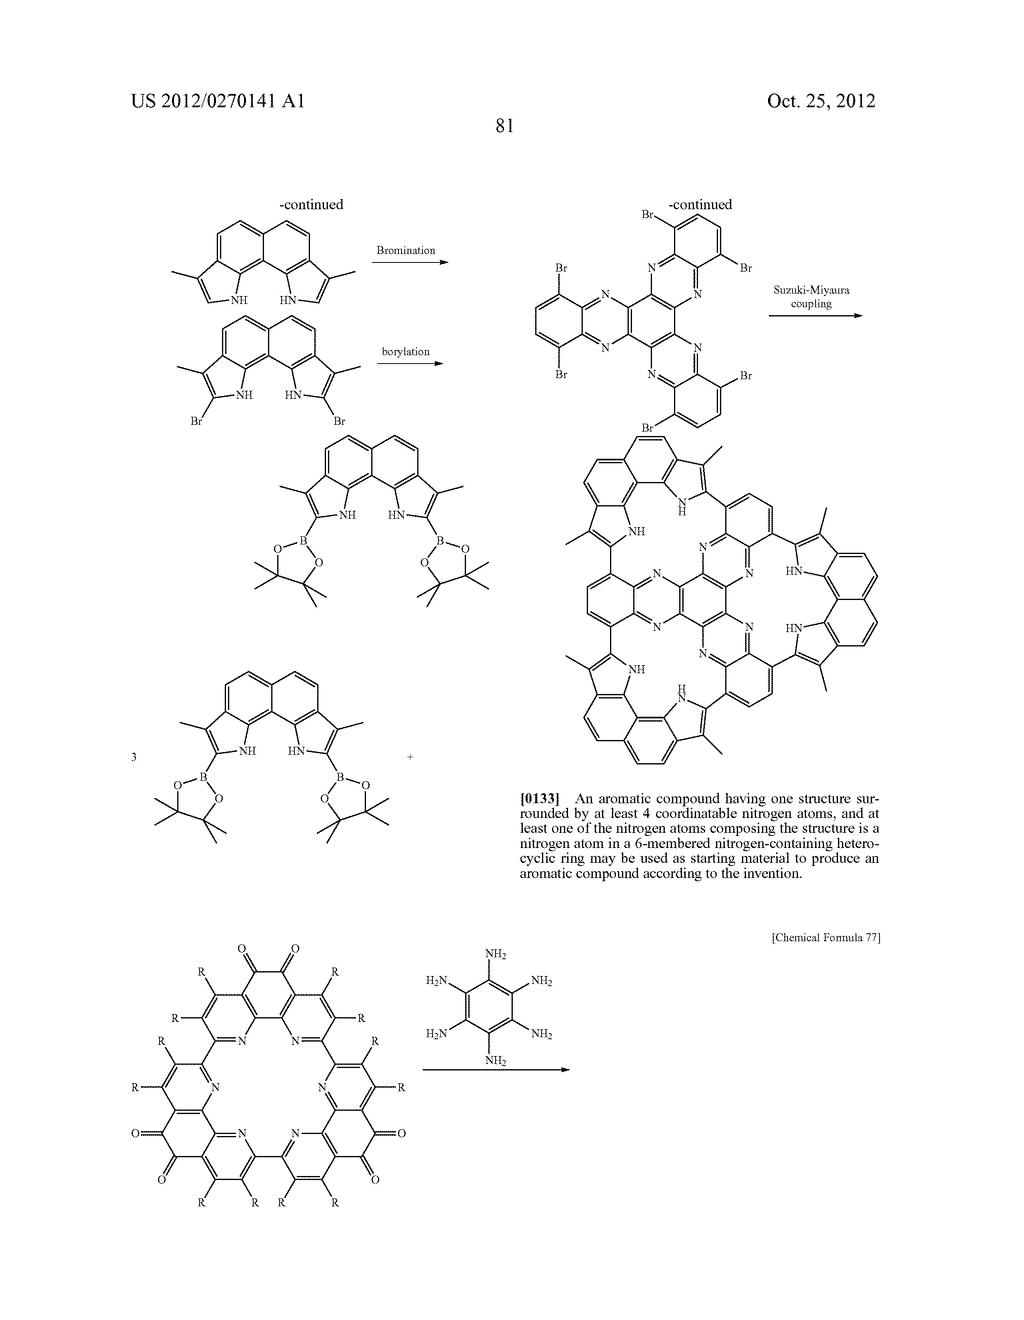 NITROGEN-CONTAINING AROMATIC COMPOUNDS AND METAL COMPLEXES - diagram, schematic, and image 82